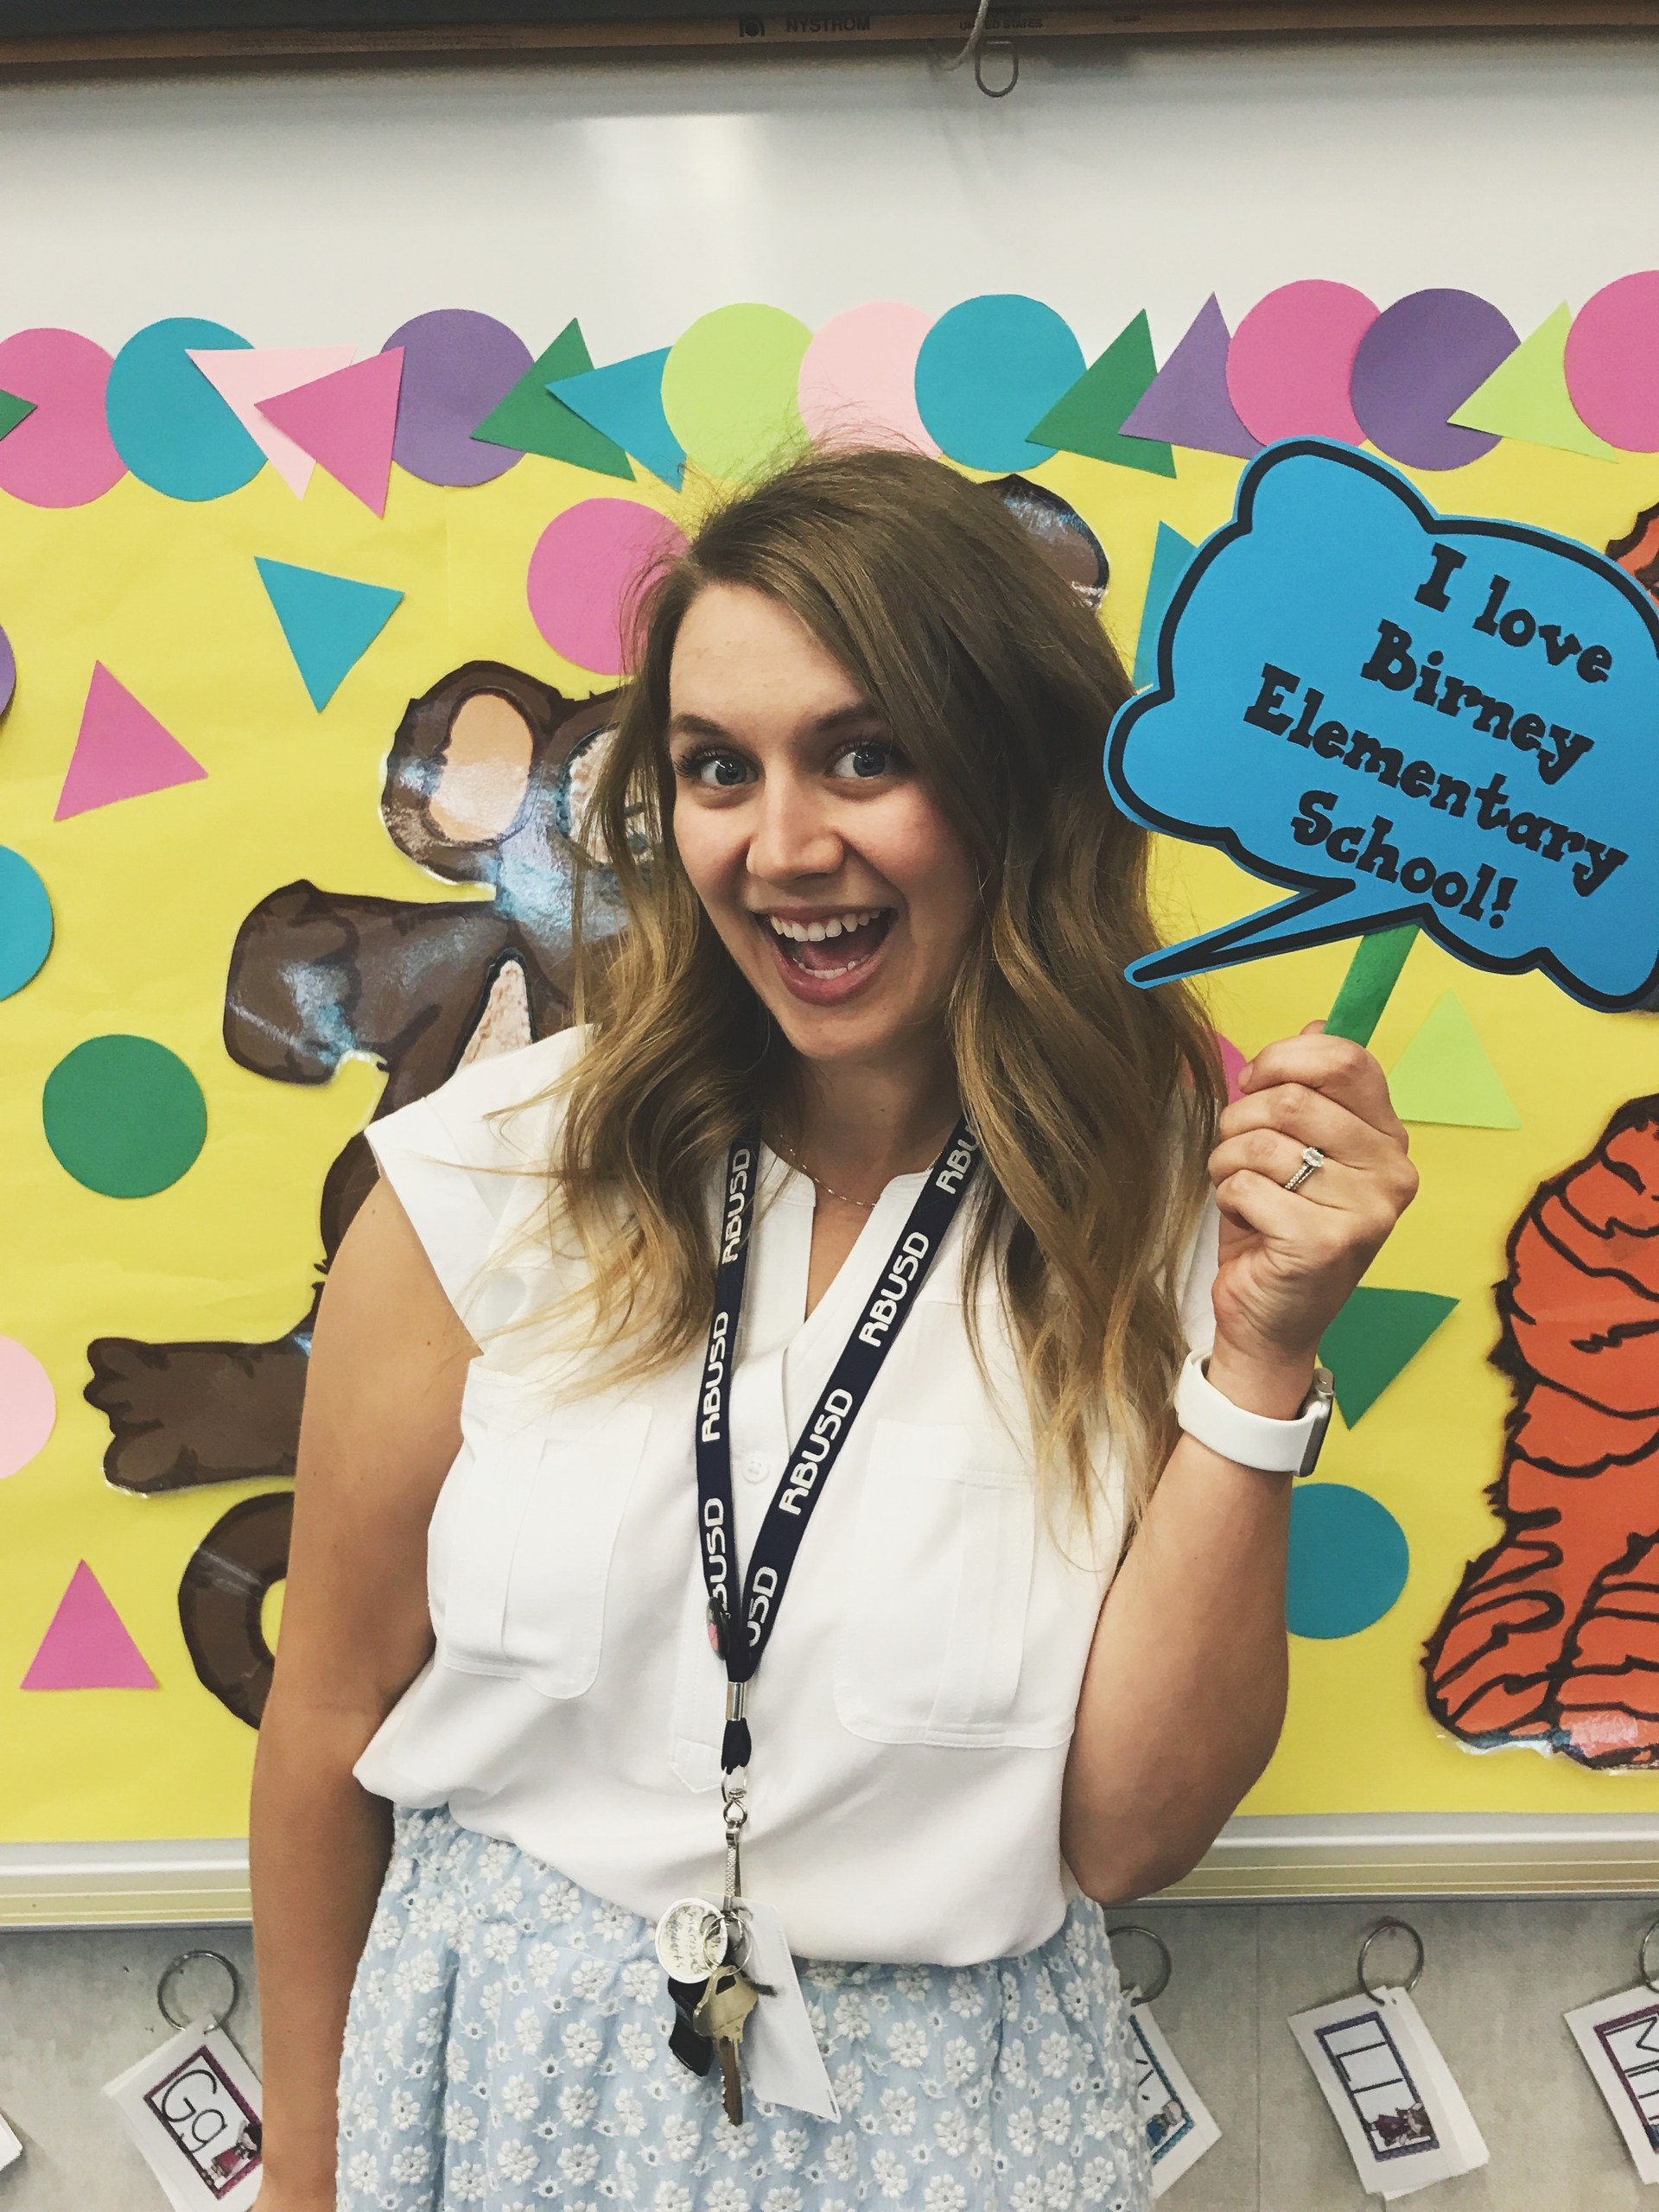 Marissa Roberts holding a sign that says 'I love Birney Elementary School!'